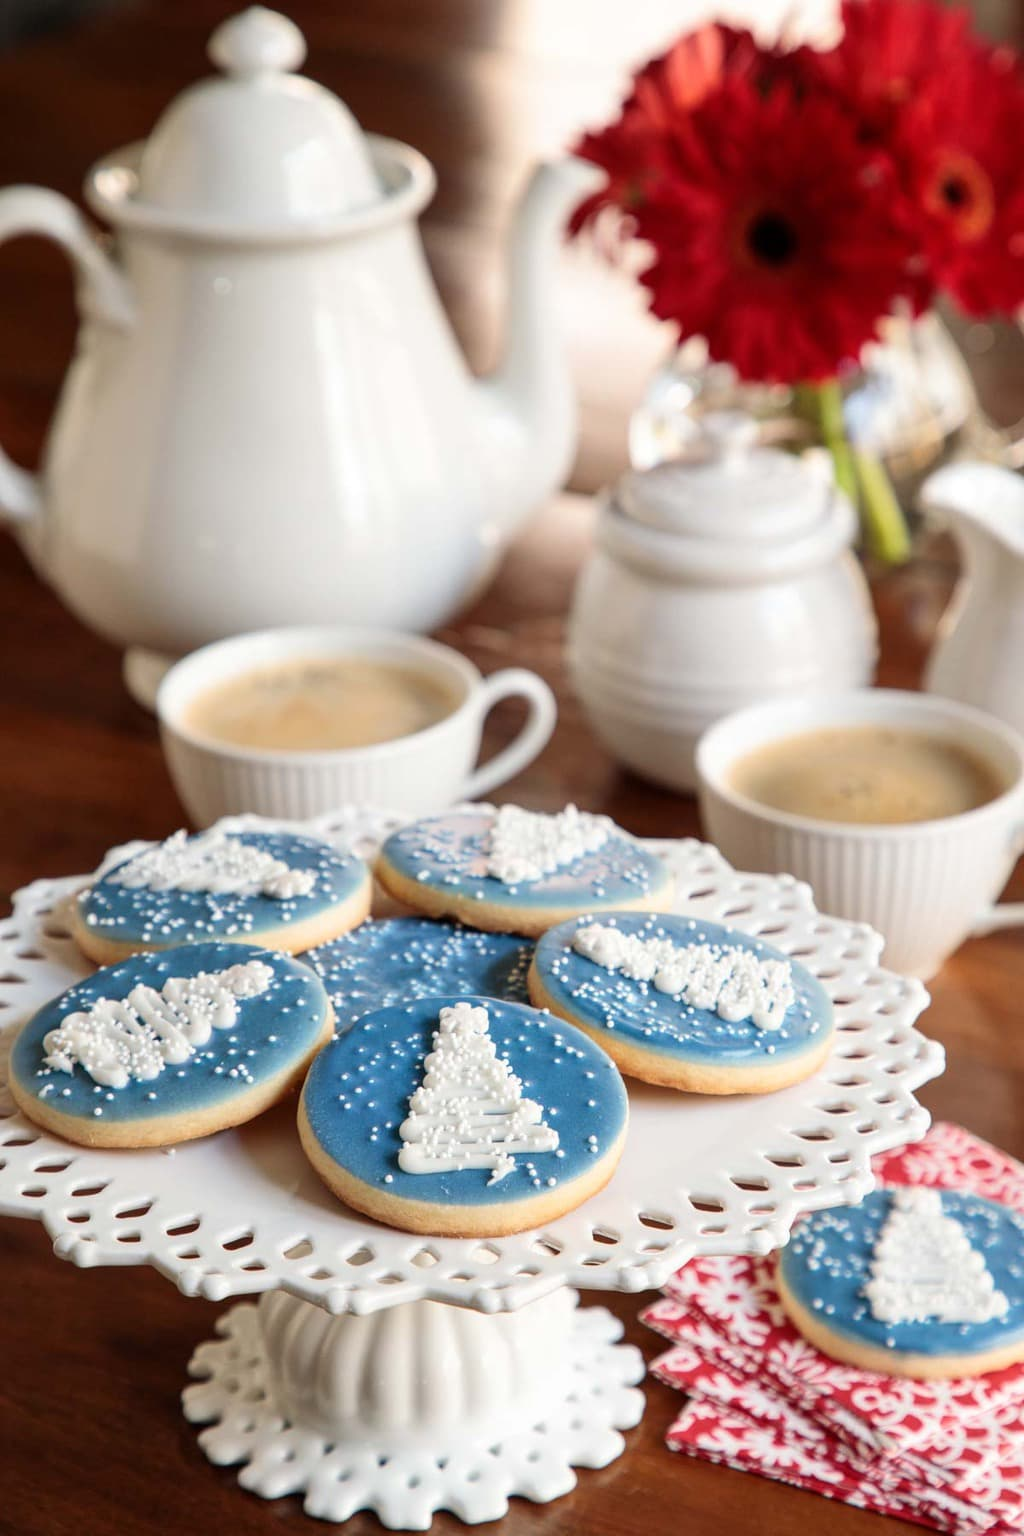 Photo of a white laced presentation plate filled with Easy Decorated Christmas Cookies. A white ironstone coffee pot, red flowers and cups of coffee are in the background.